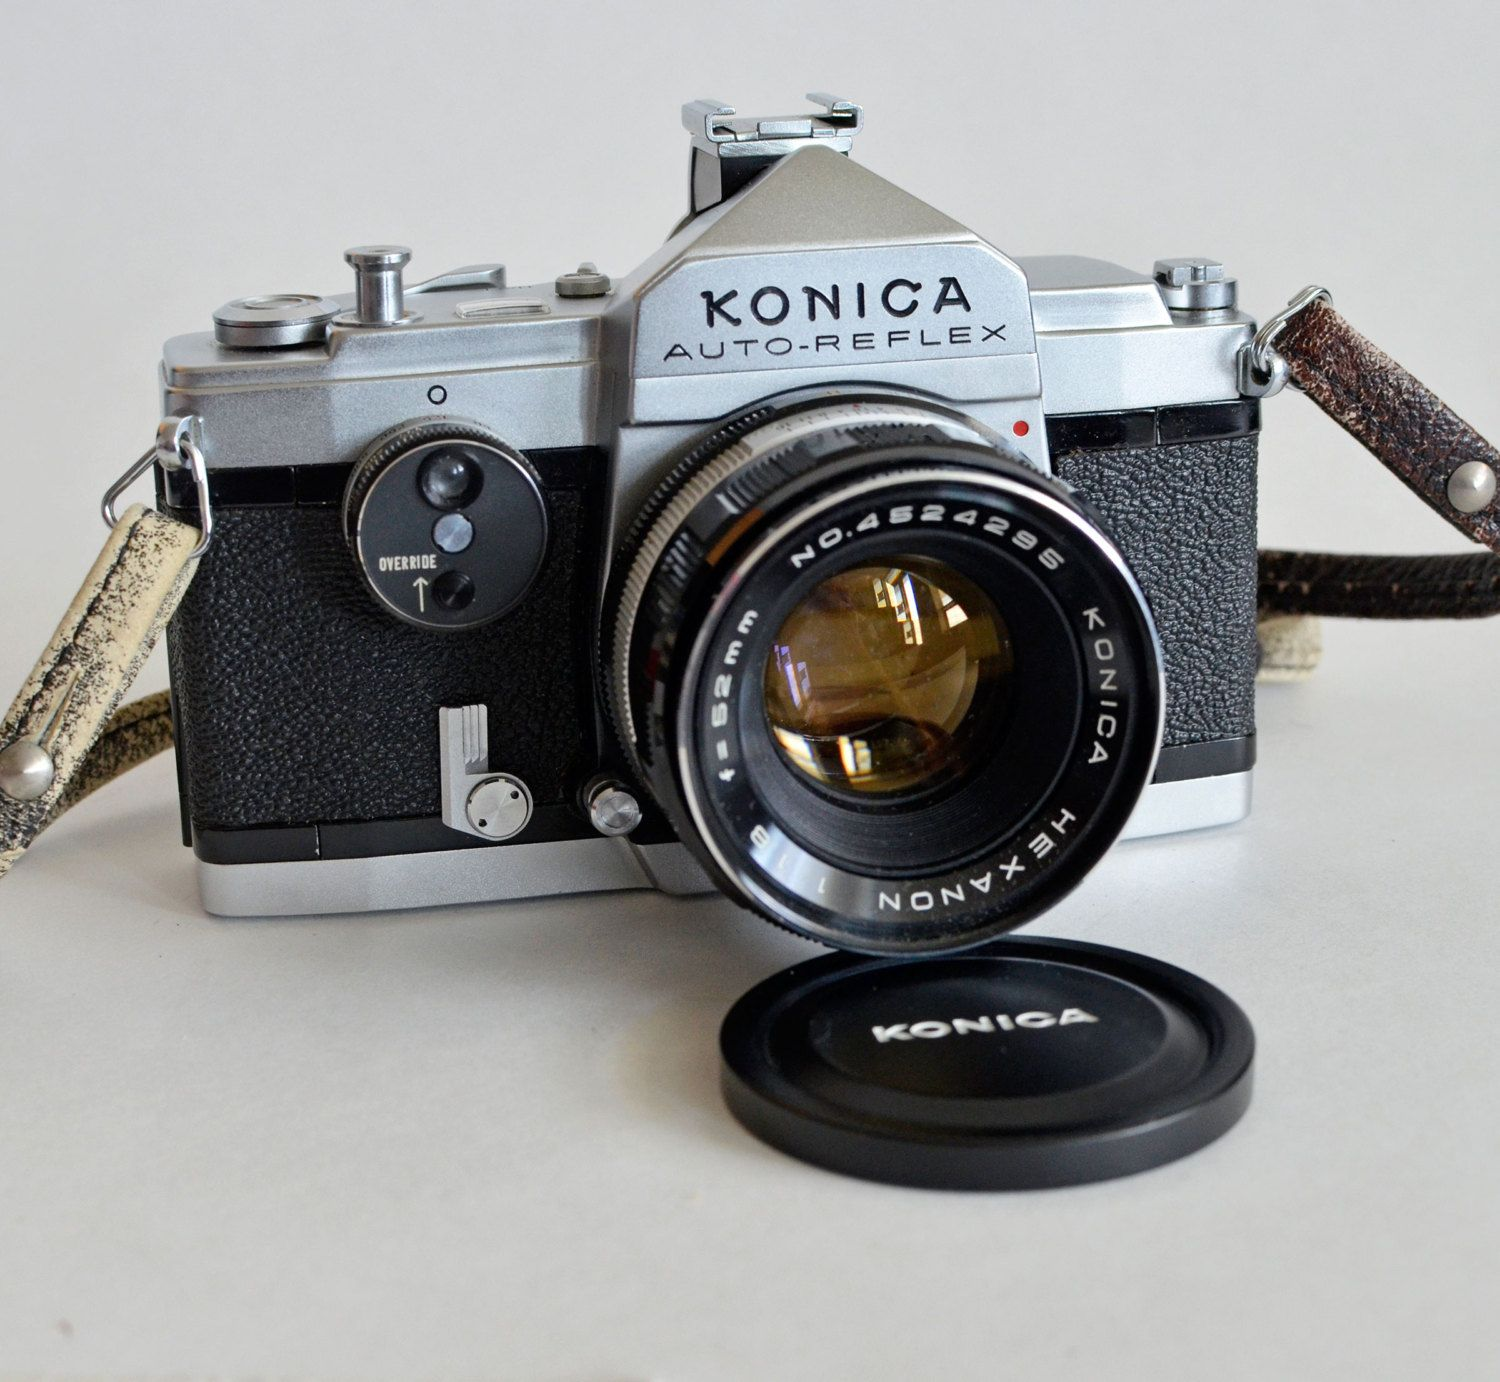 Film Camera Vintage Konica Auto Reflex Slr 35mm Film Camera W Hexanon